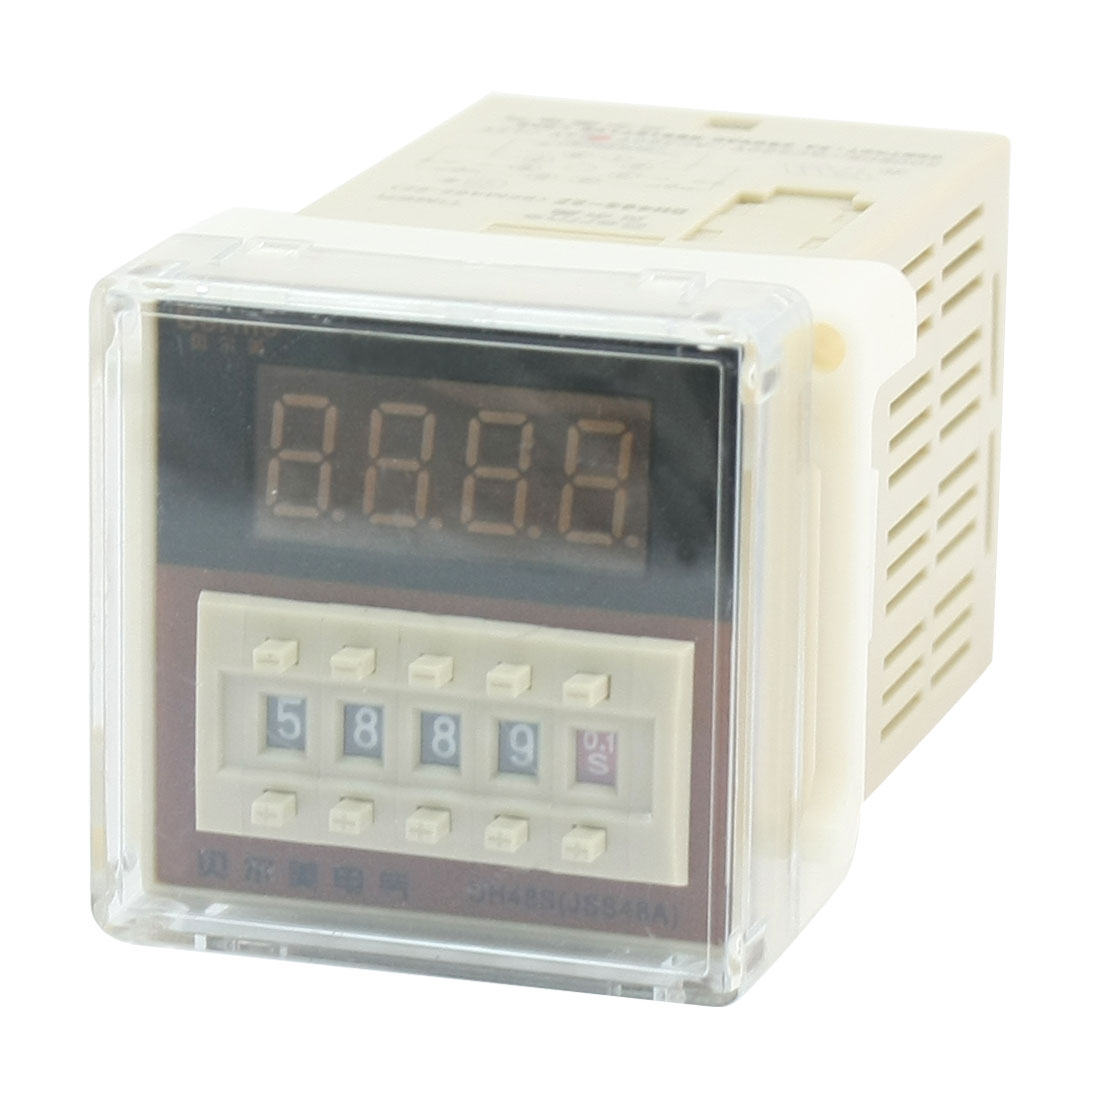 DH48S-2Z DC24V 8Pin DPDT 2NO 2NC 0.01s-9999H LED Display Programmable Adjustable Time Delay Timer Relay